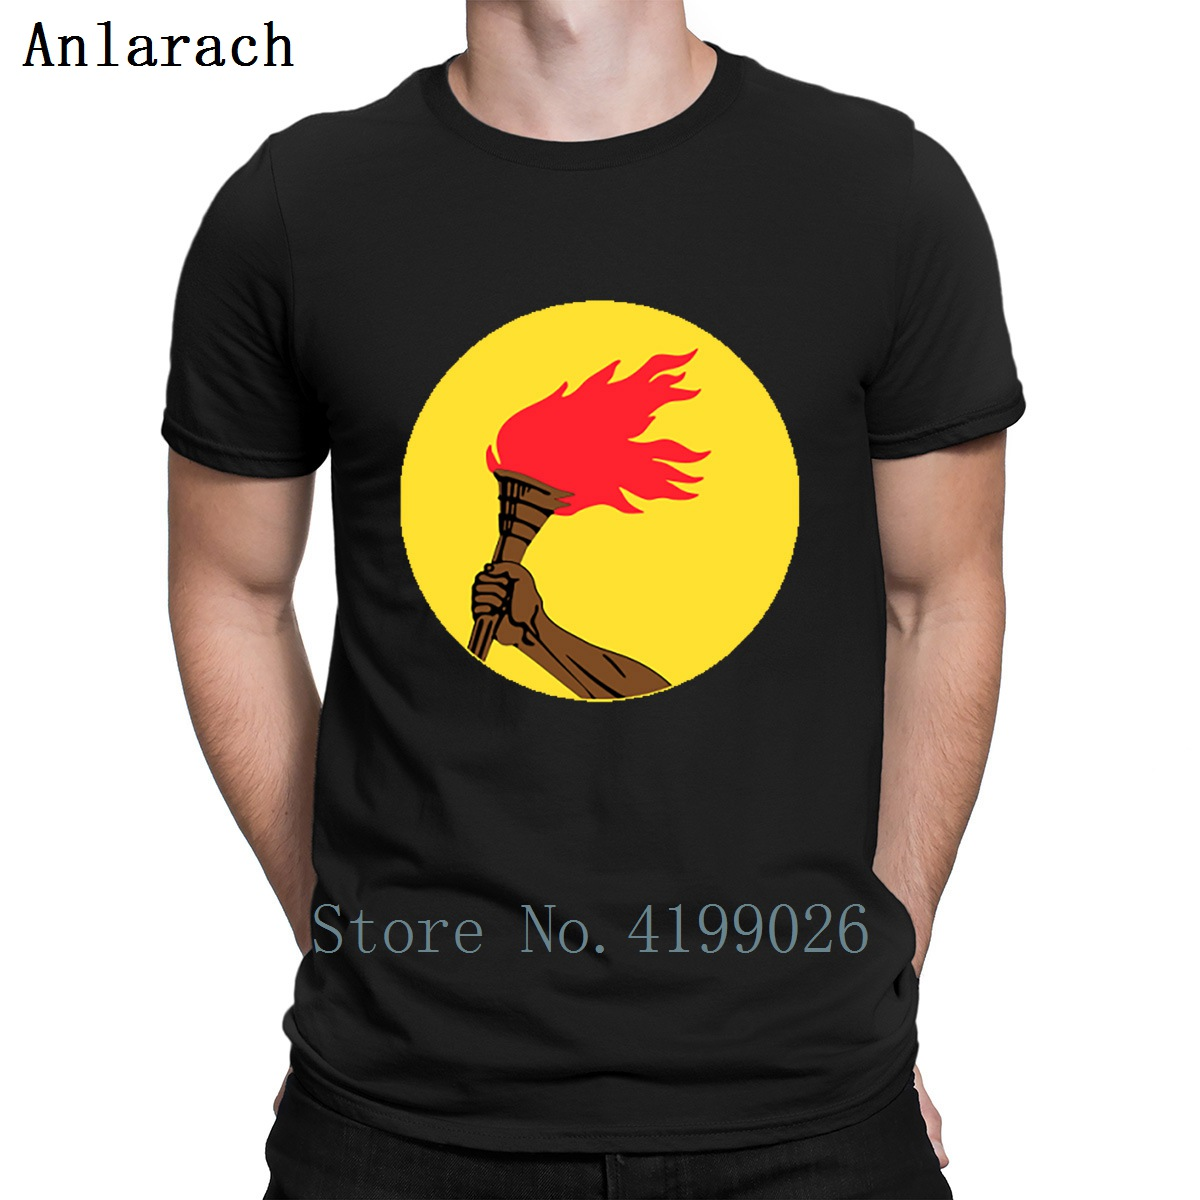 Zaire Congo Flag T Shirt Comfortable Spring Cute Cotton Clothing Size S-5xl Knitted Trend Shirt